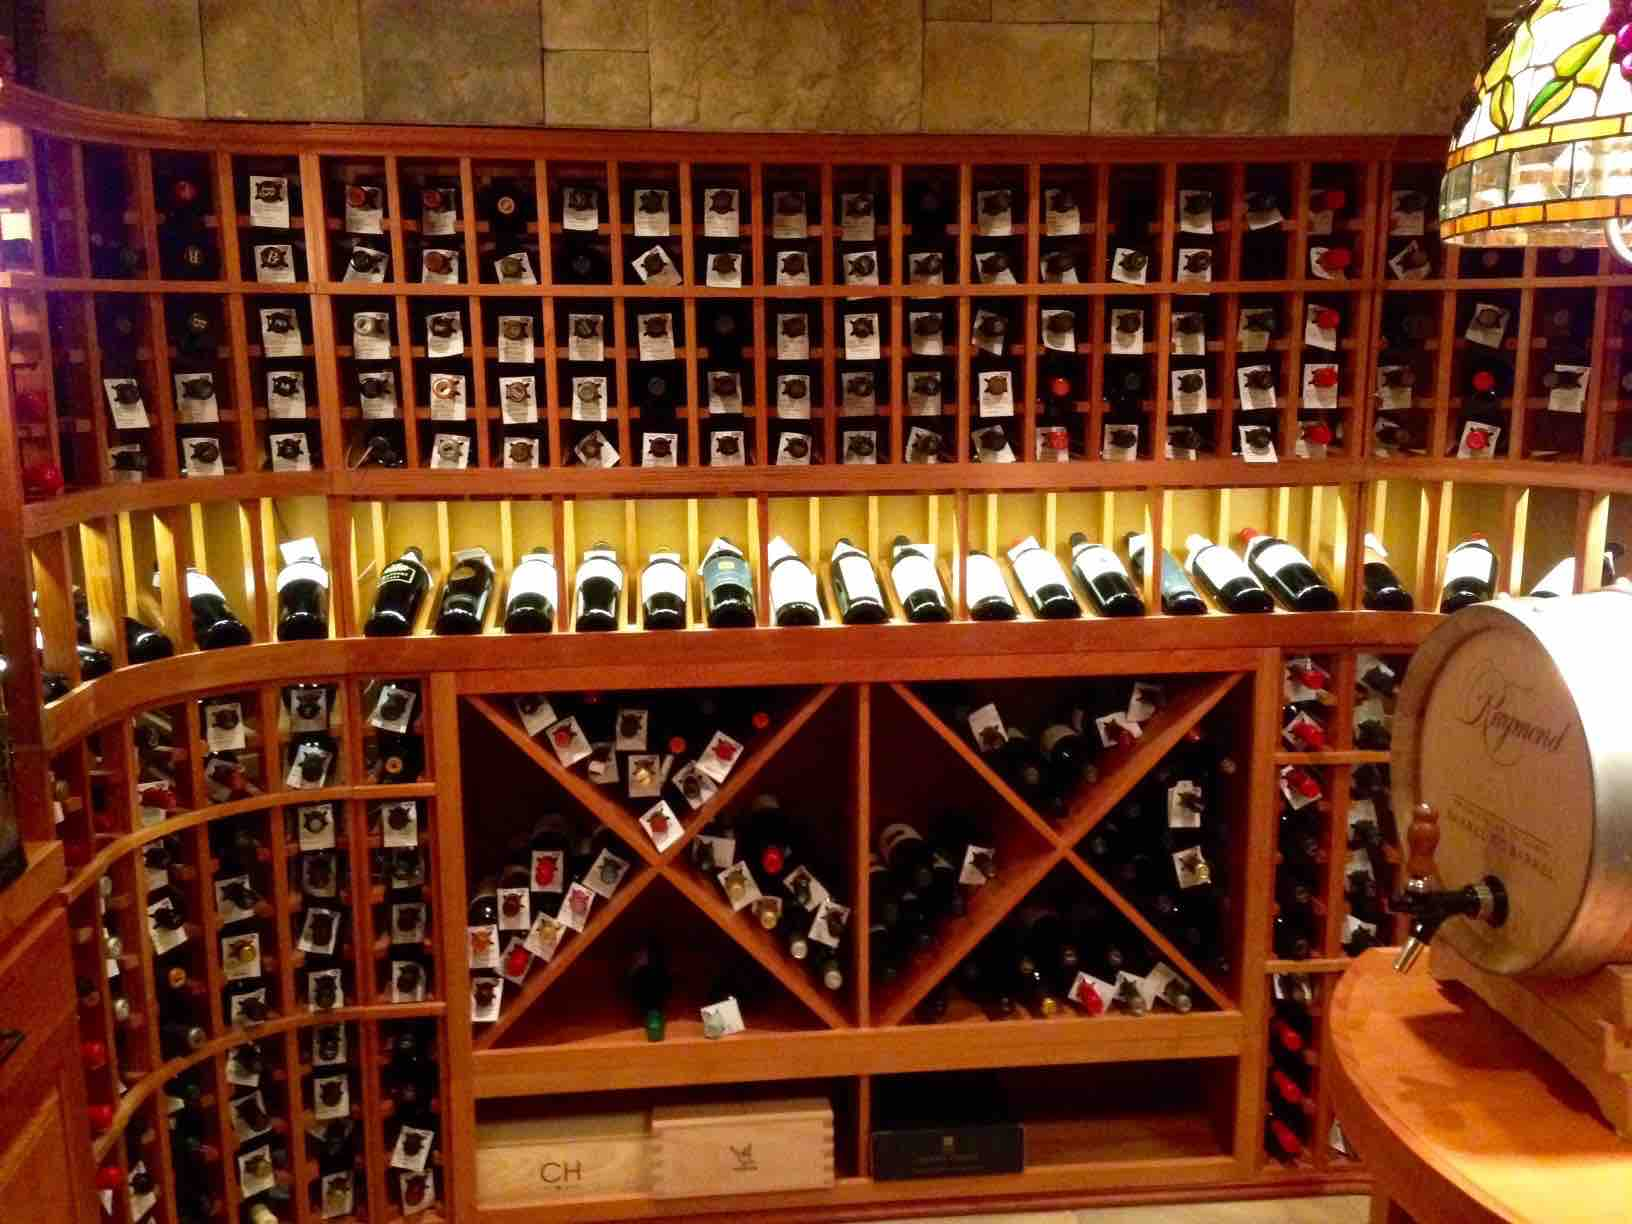 Build a wine cellar in your houston home basement - Small space wine racks design ...